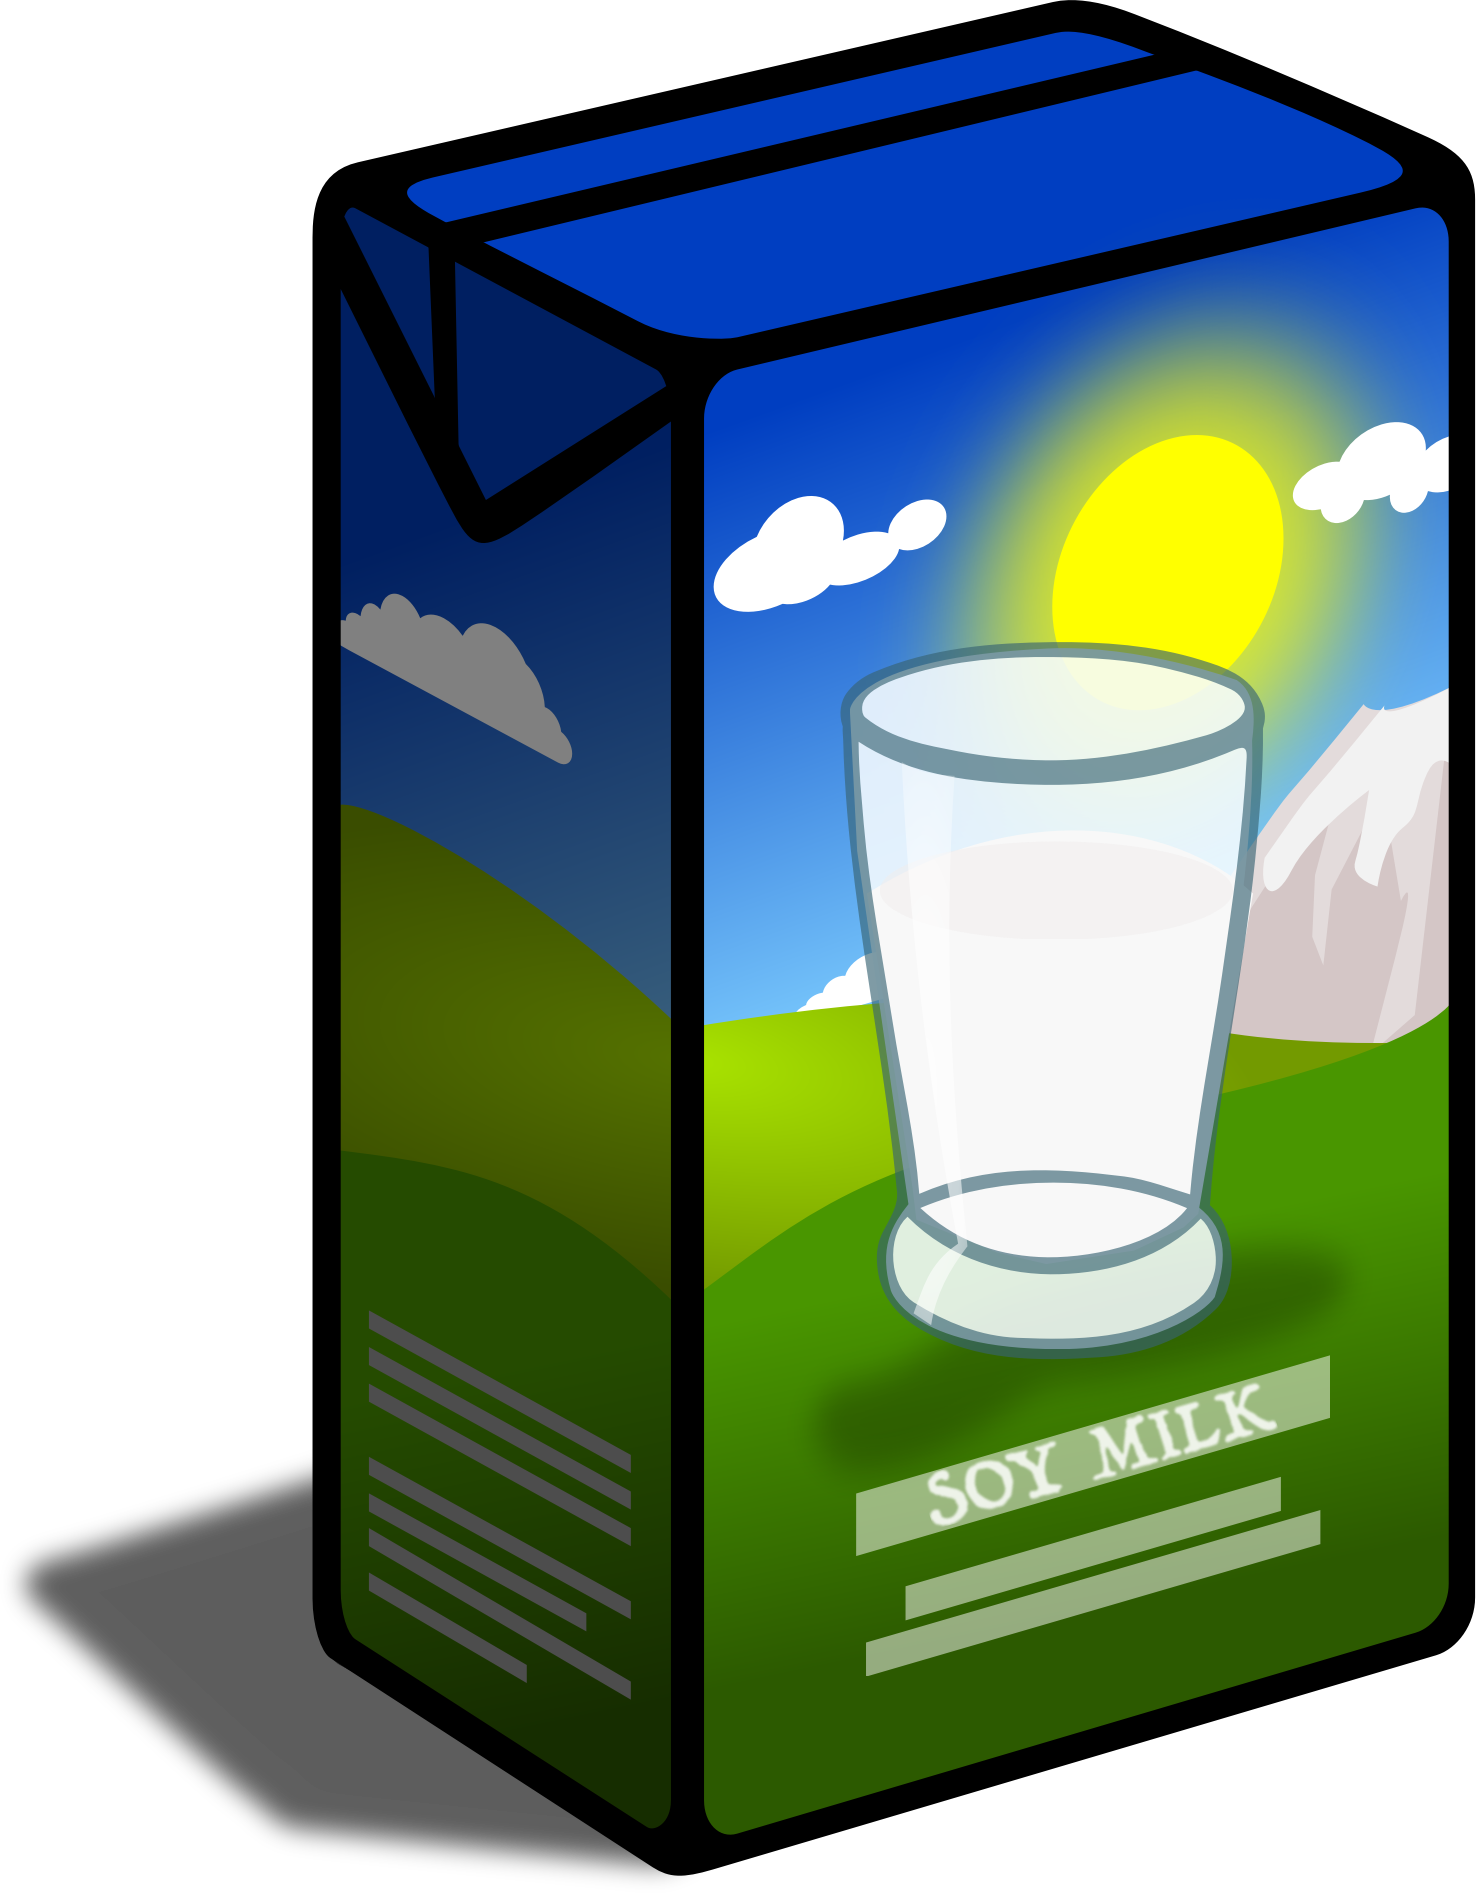 Drinks clipart milk carton. Soy big image png